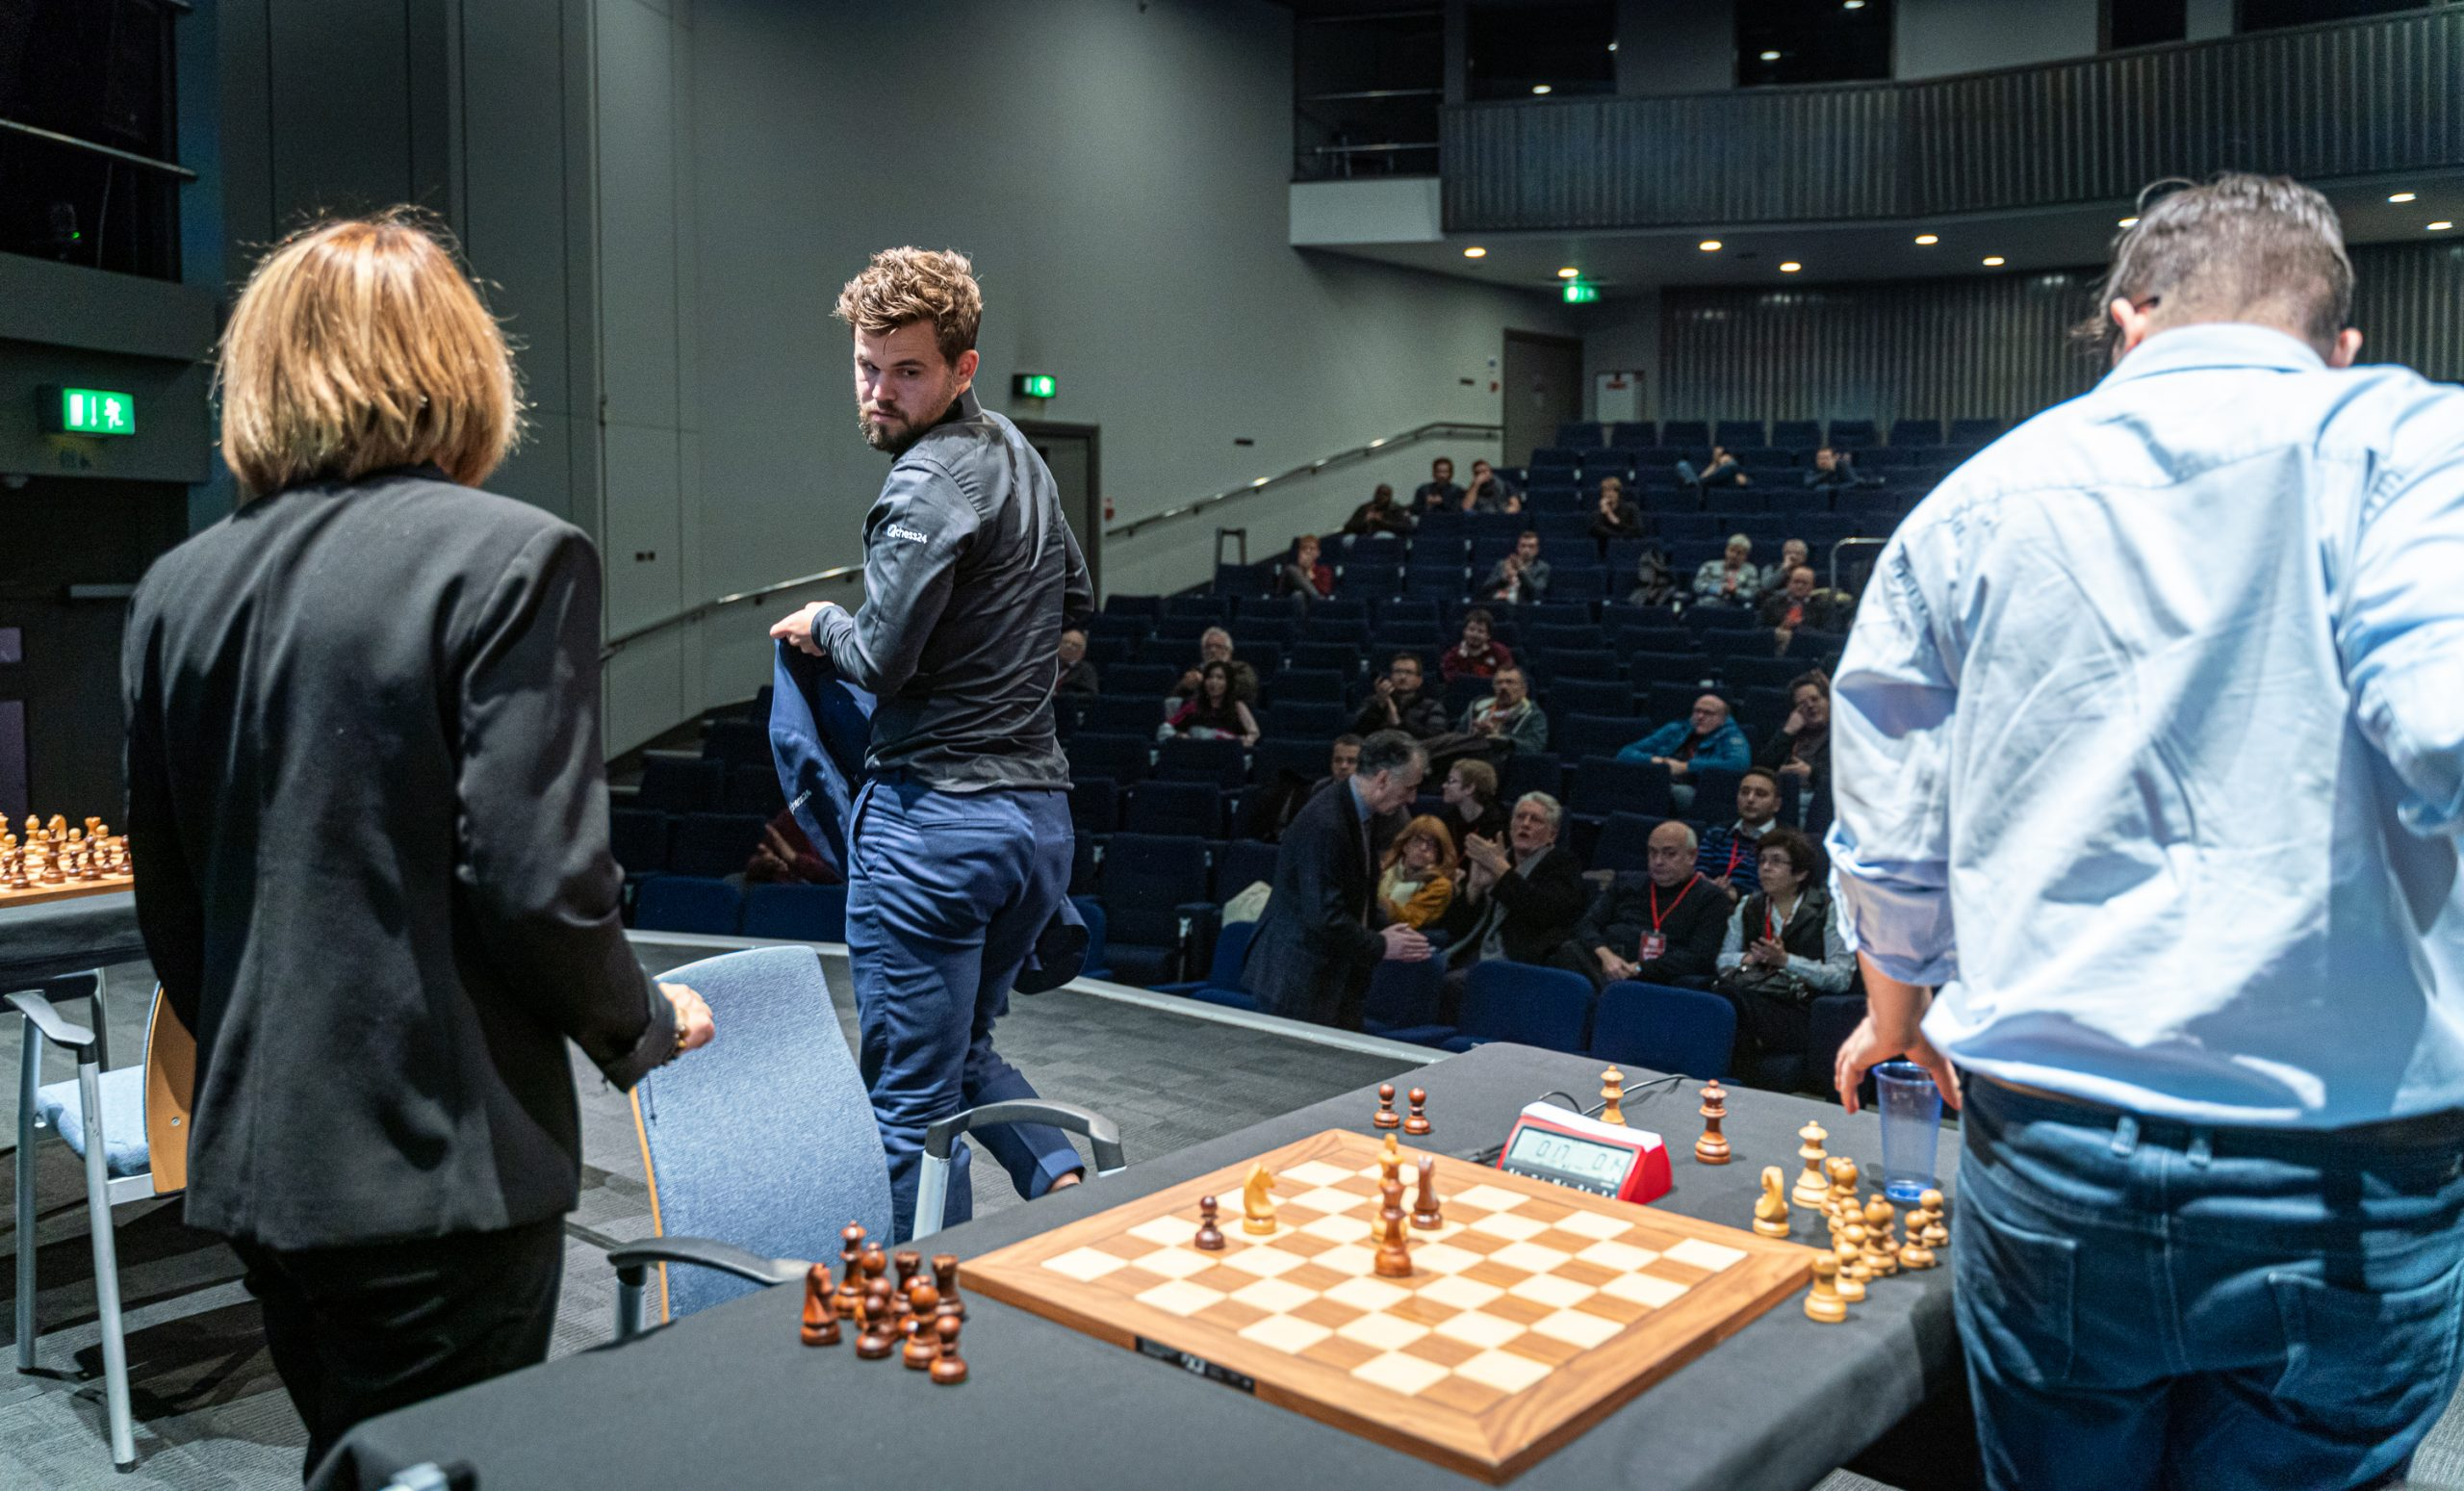 The world champ was outplayed and could only fight only for the 3rd place | Image courtesy of Grand Chess Tour